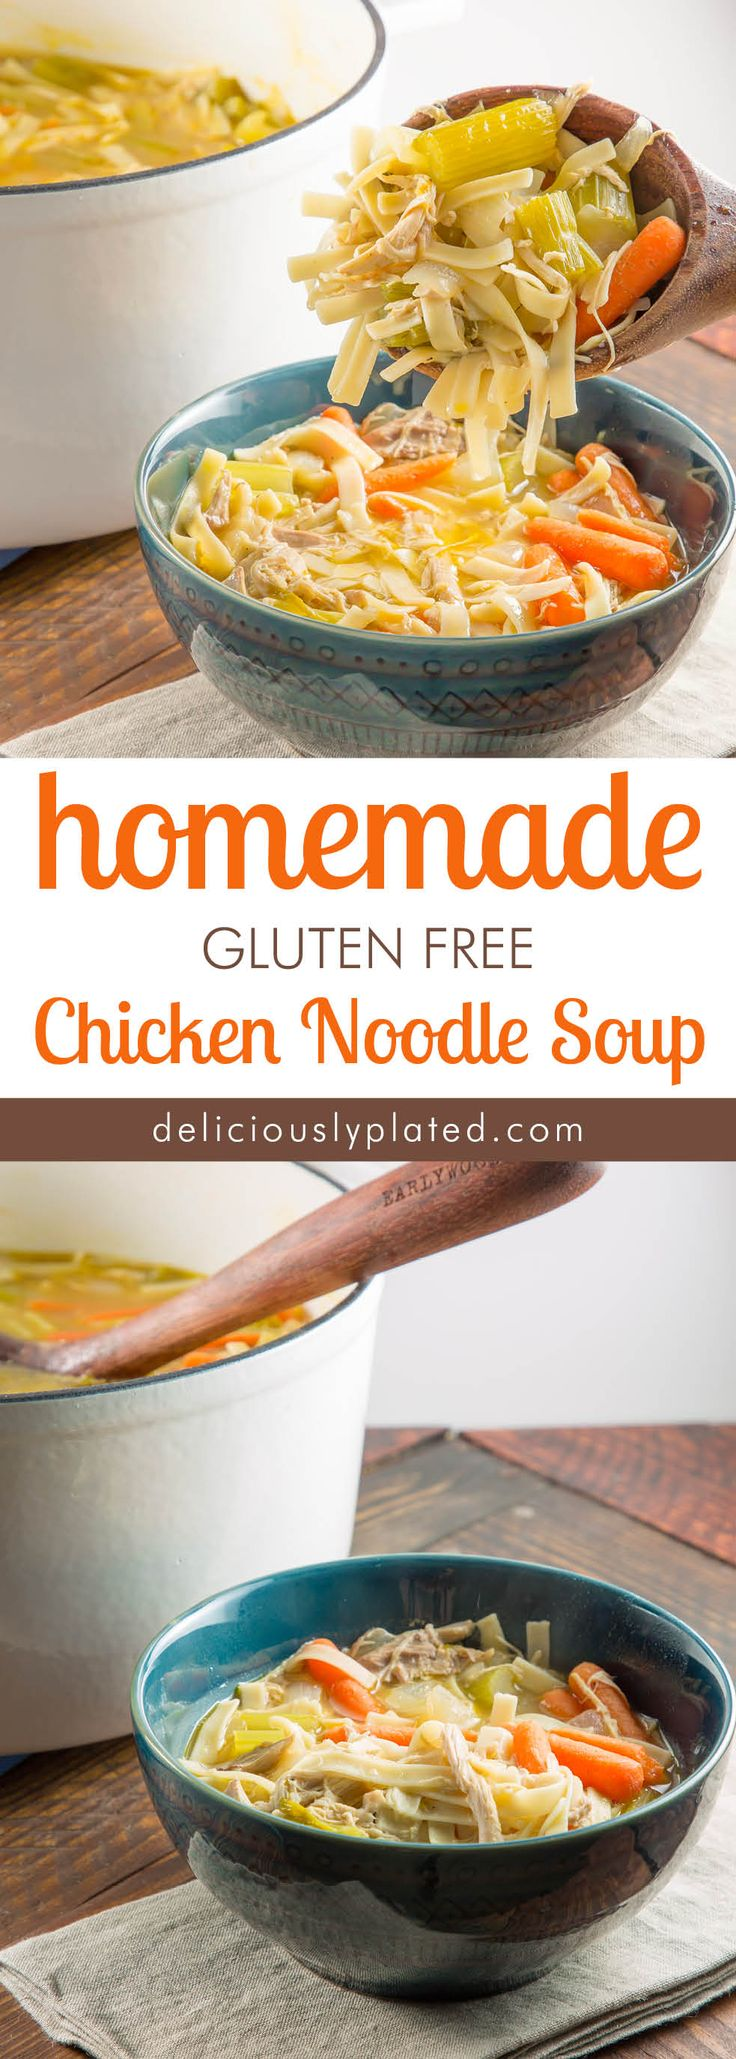 Hearty and Comforting, this homemade chicken soup is the perfect Fall dish! #glutenfreeoption #comfortfood via @leslie9612